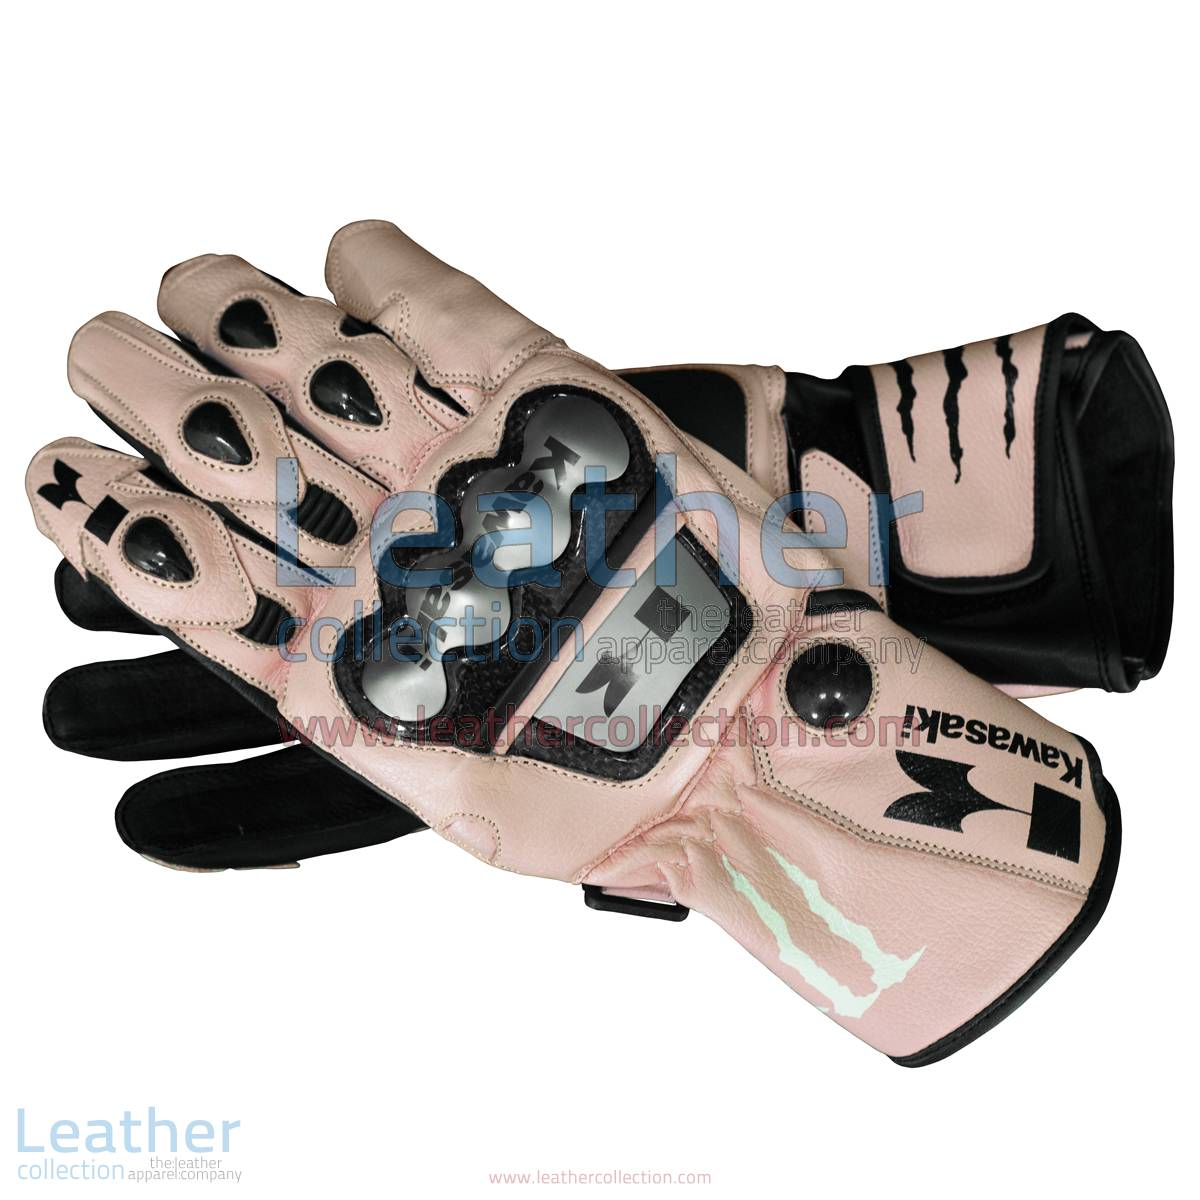 Kawasaki Monster Leather Gloves | Kawasaki gloves